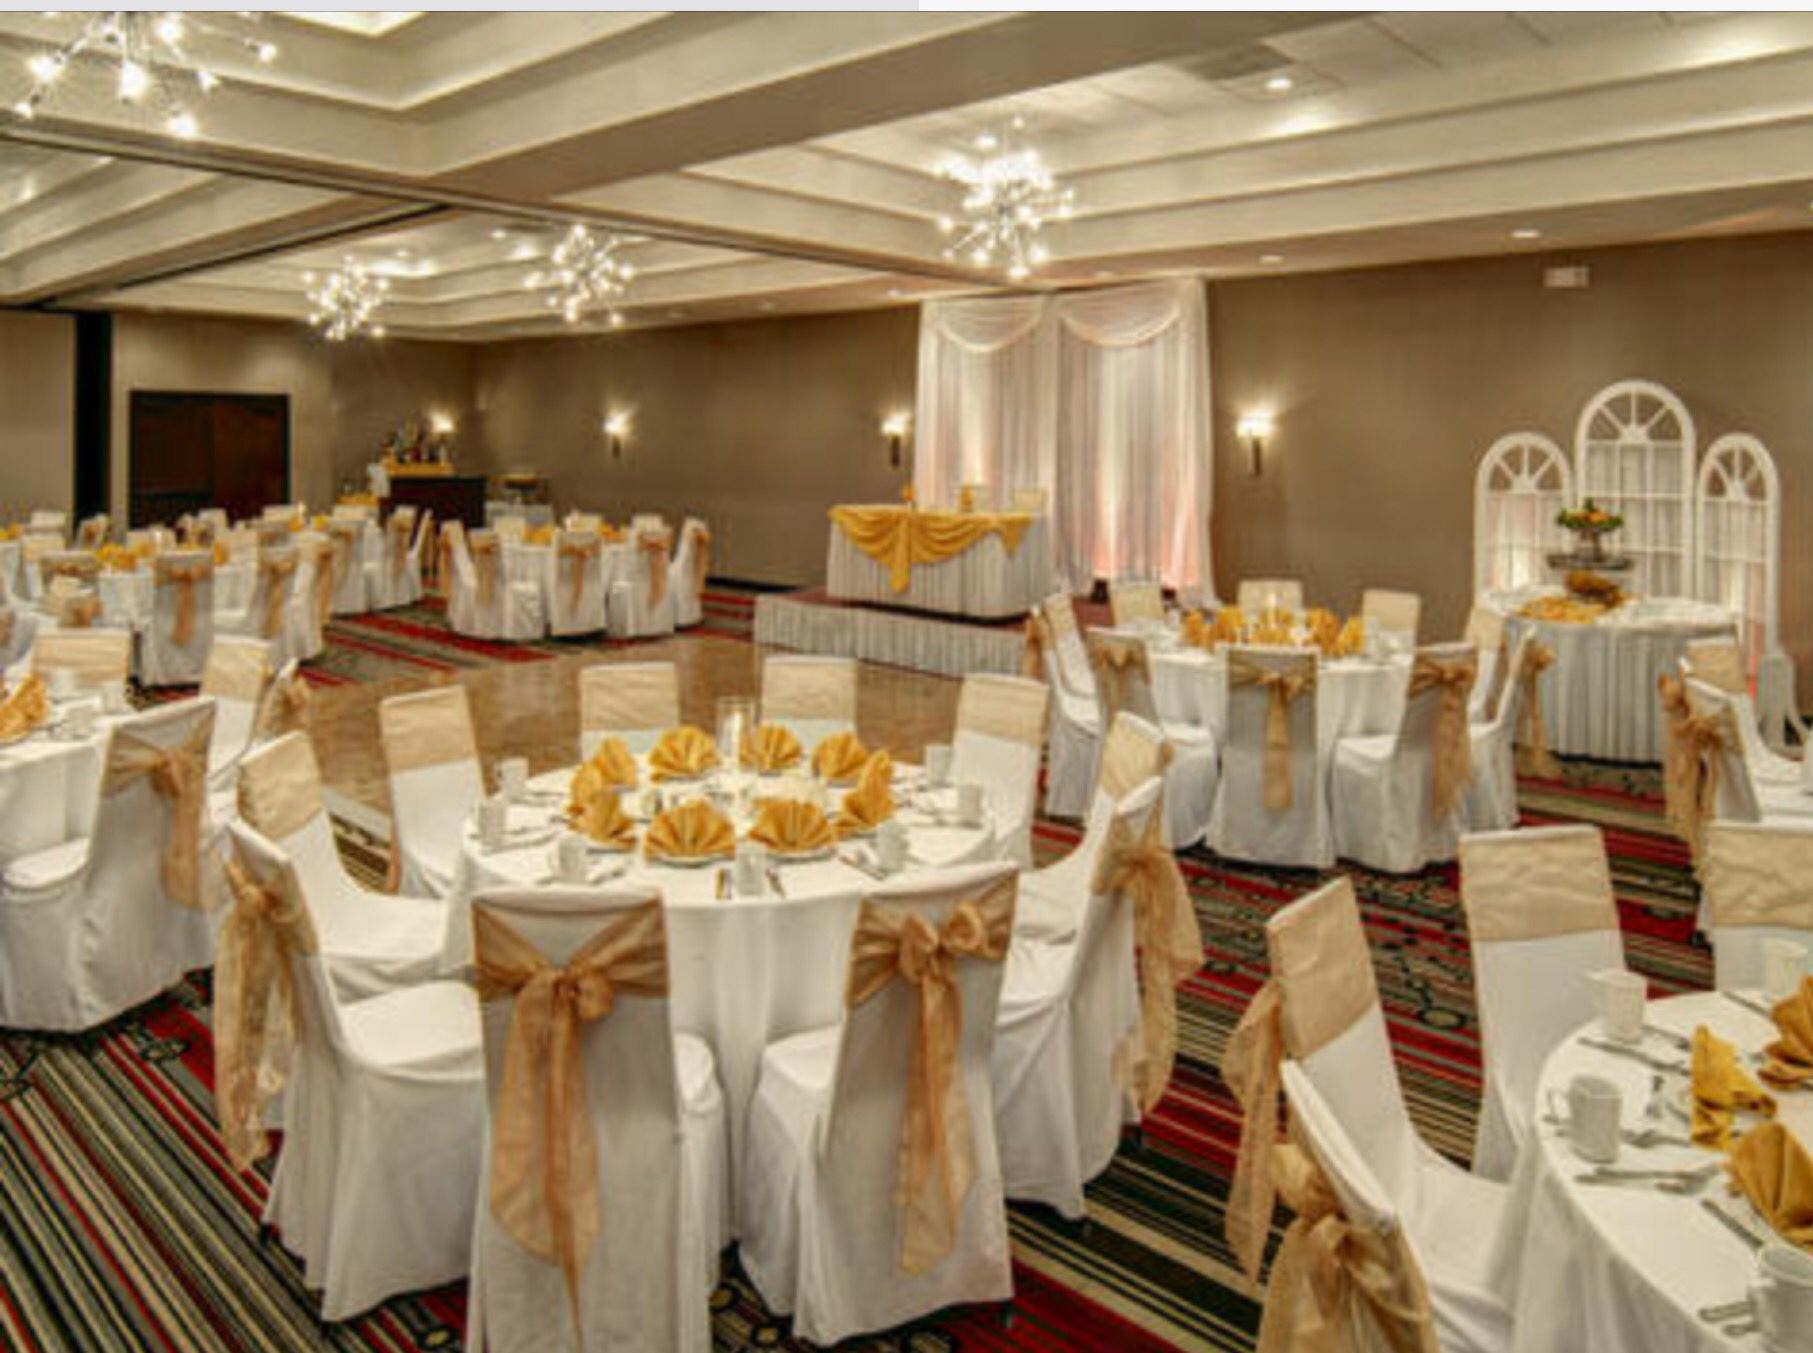 The chandeliers are so abstract and stylish! | Banquet Halls | Pinterest